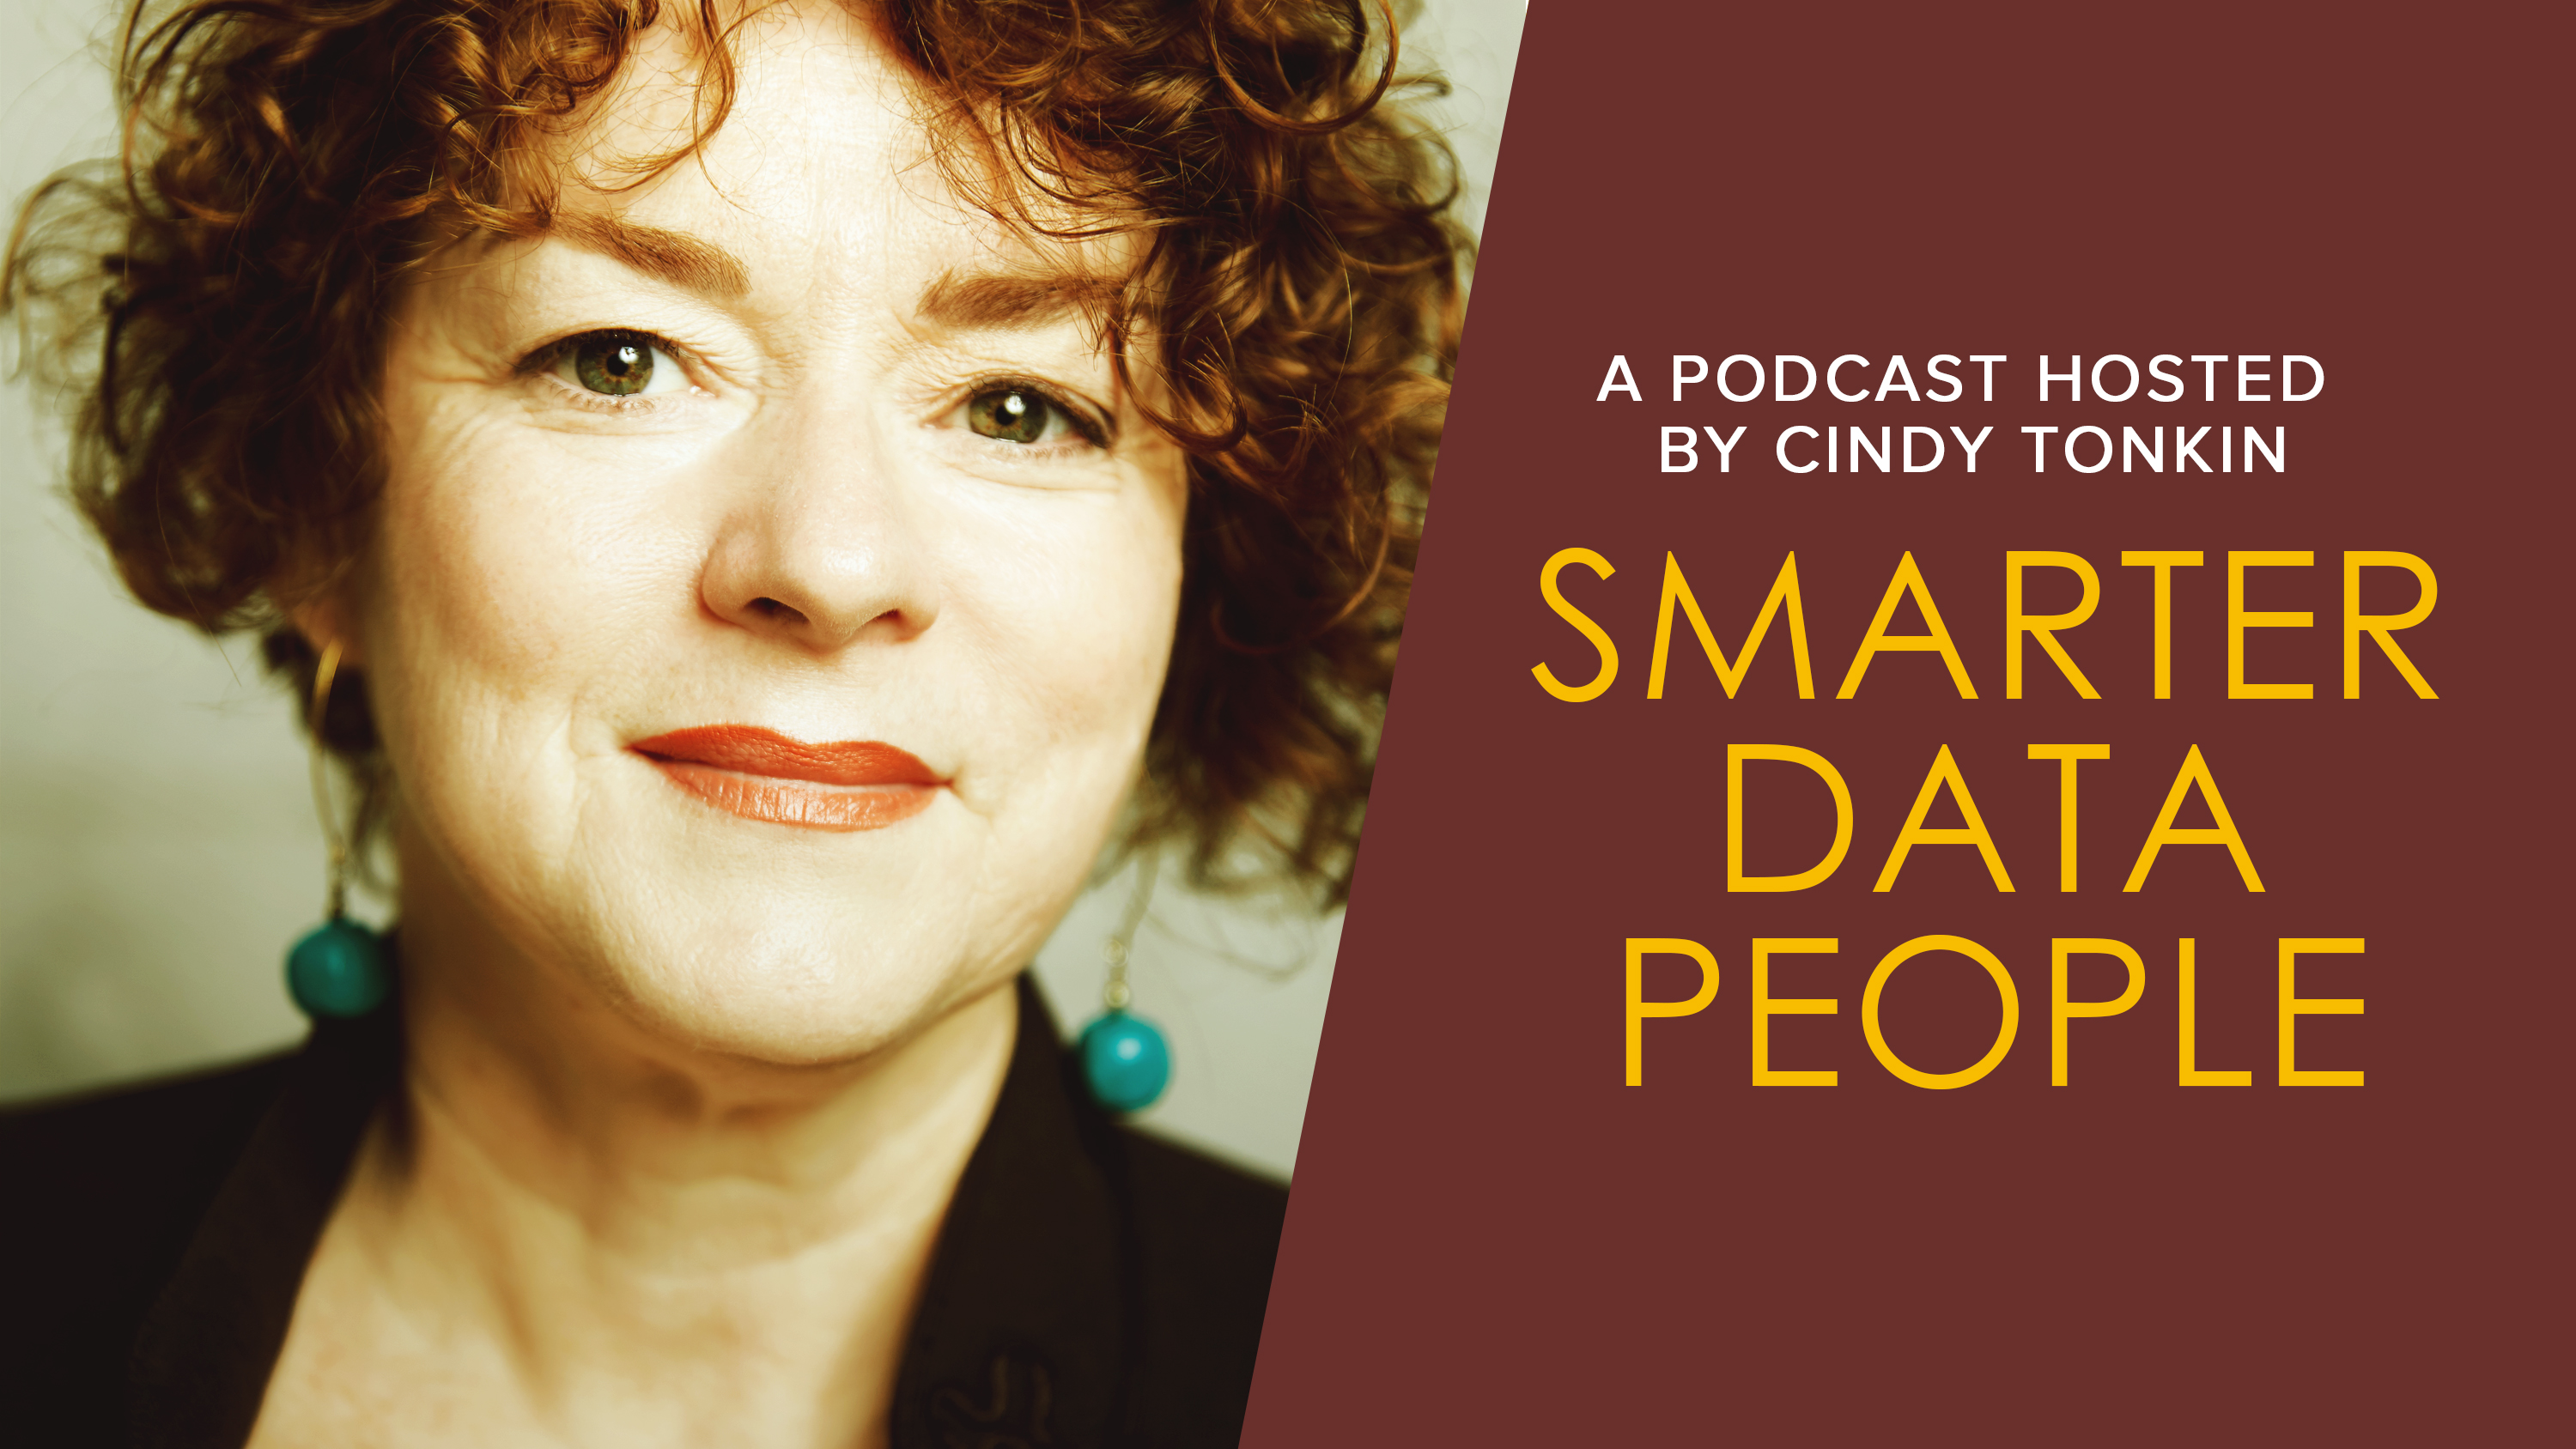 David Scott on Smarter Data People Podcast